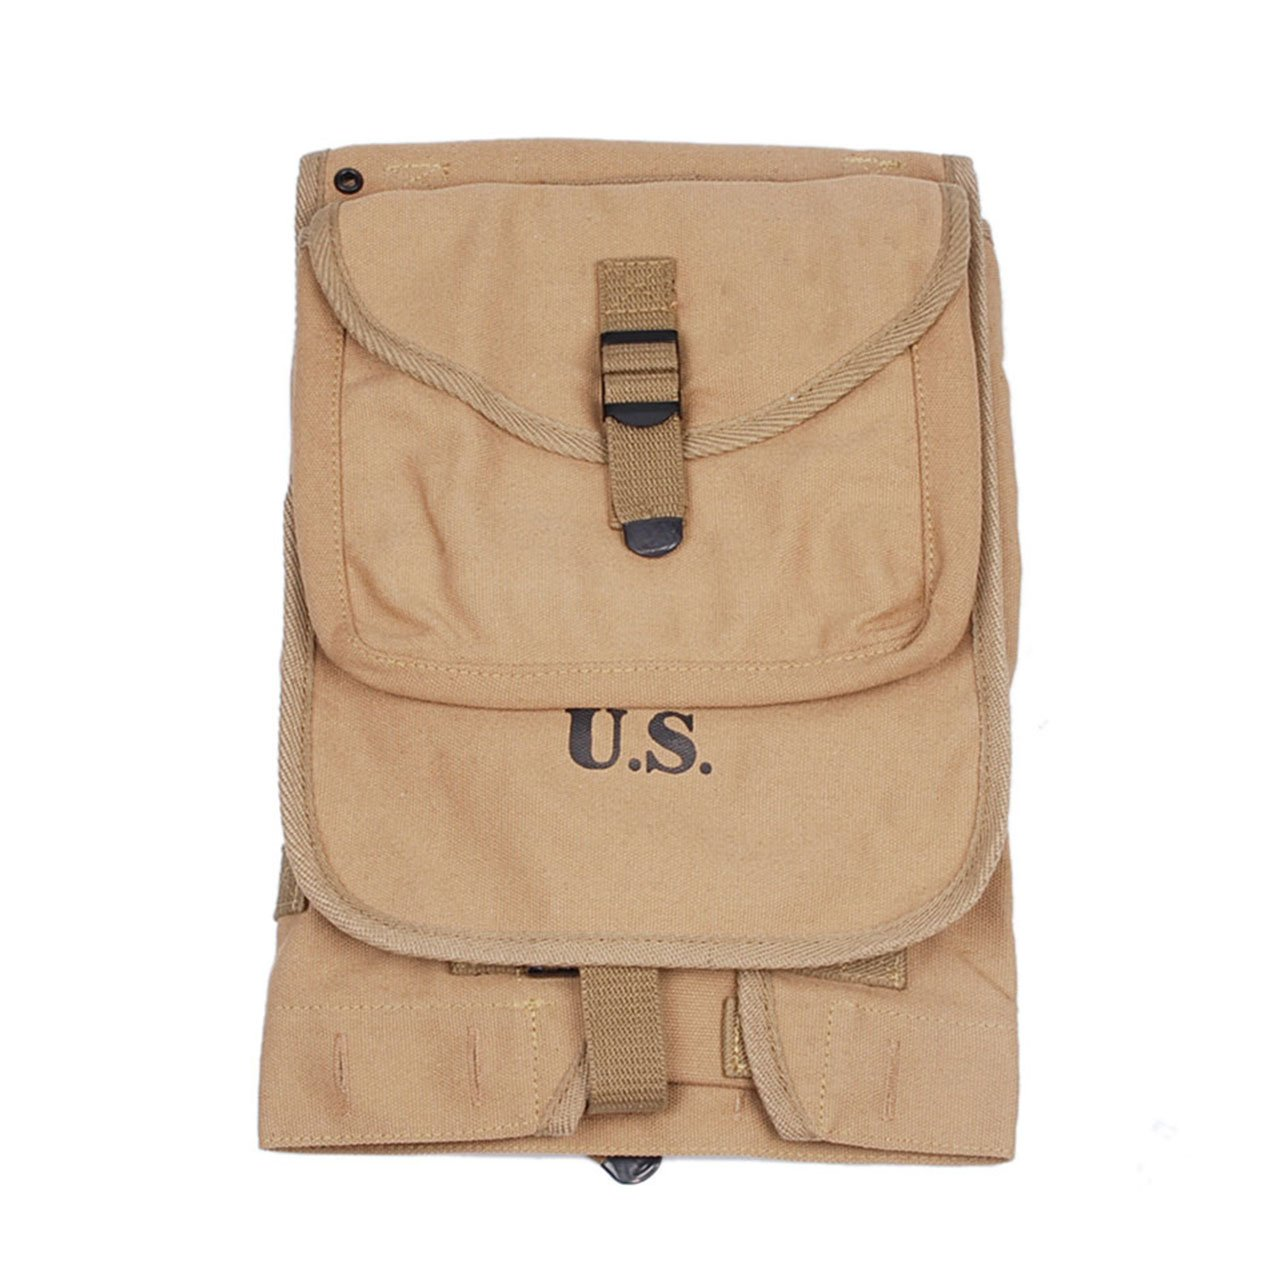 3292751c345d Heerpoint Reproduction Ww2 Wwii Us Army M1928 Tactical Haversack Rucksack  Knapsack Backpacks Canvas (khaki)